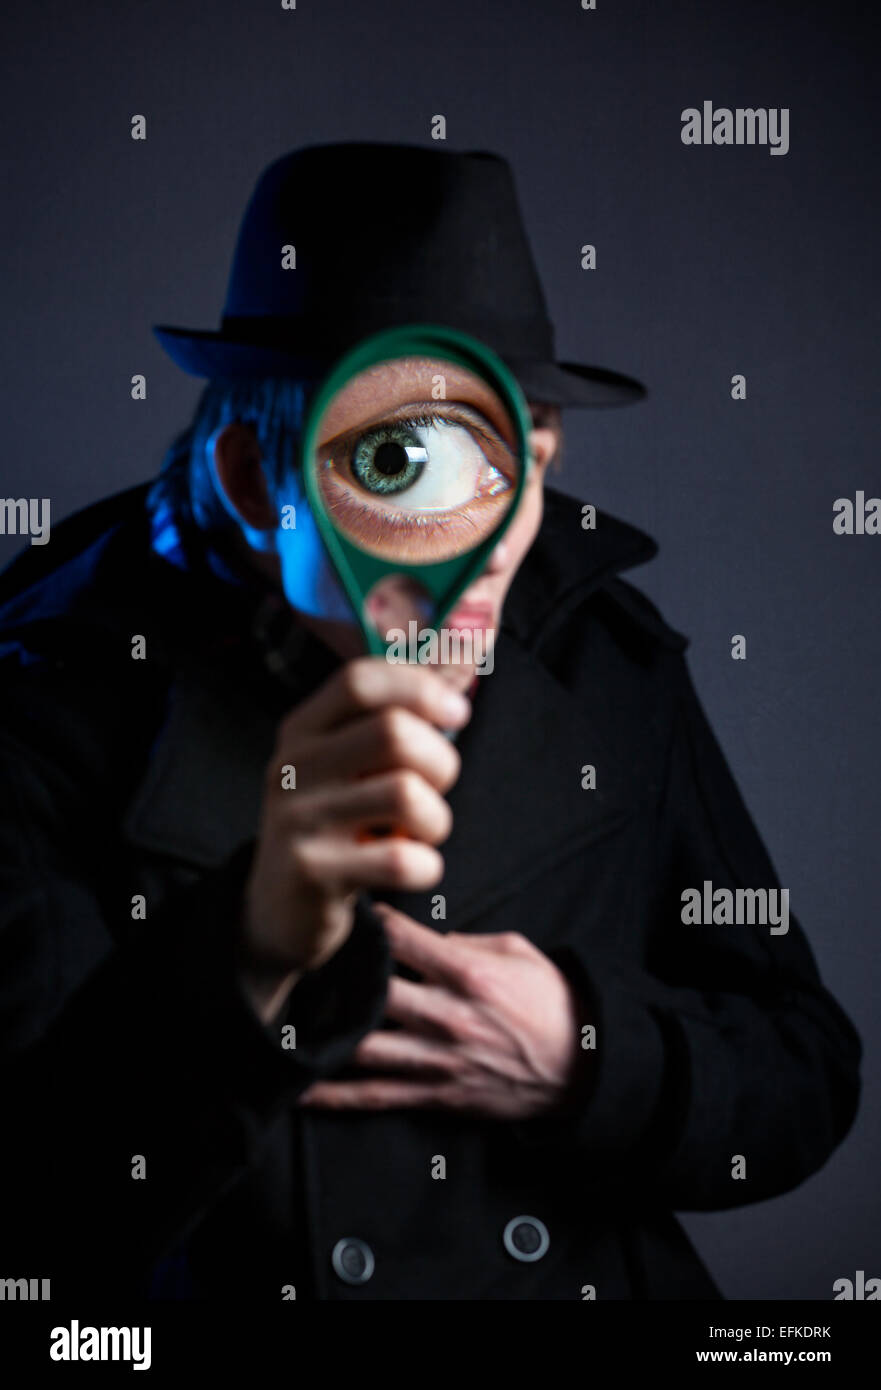 Man in black hat with magnifier glass at dark background - Stock Image